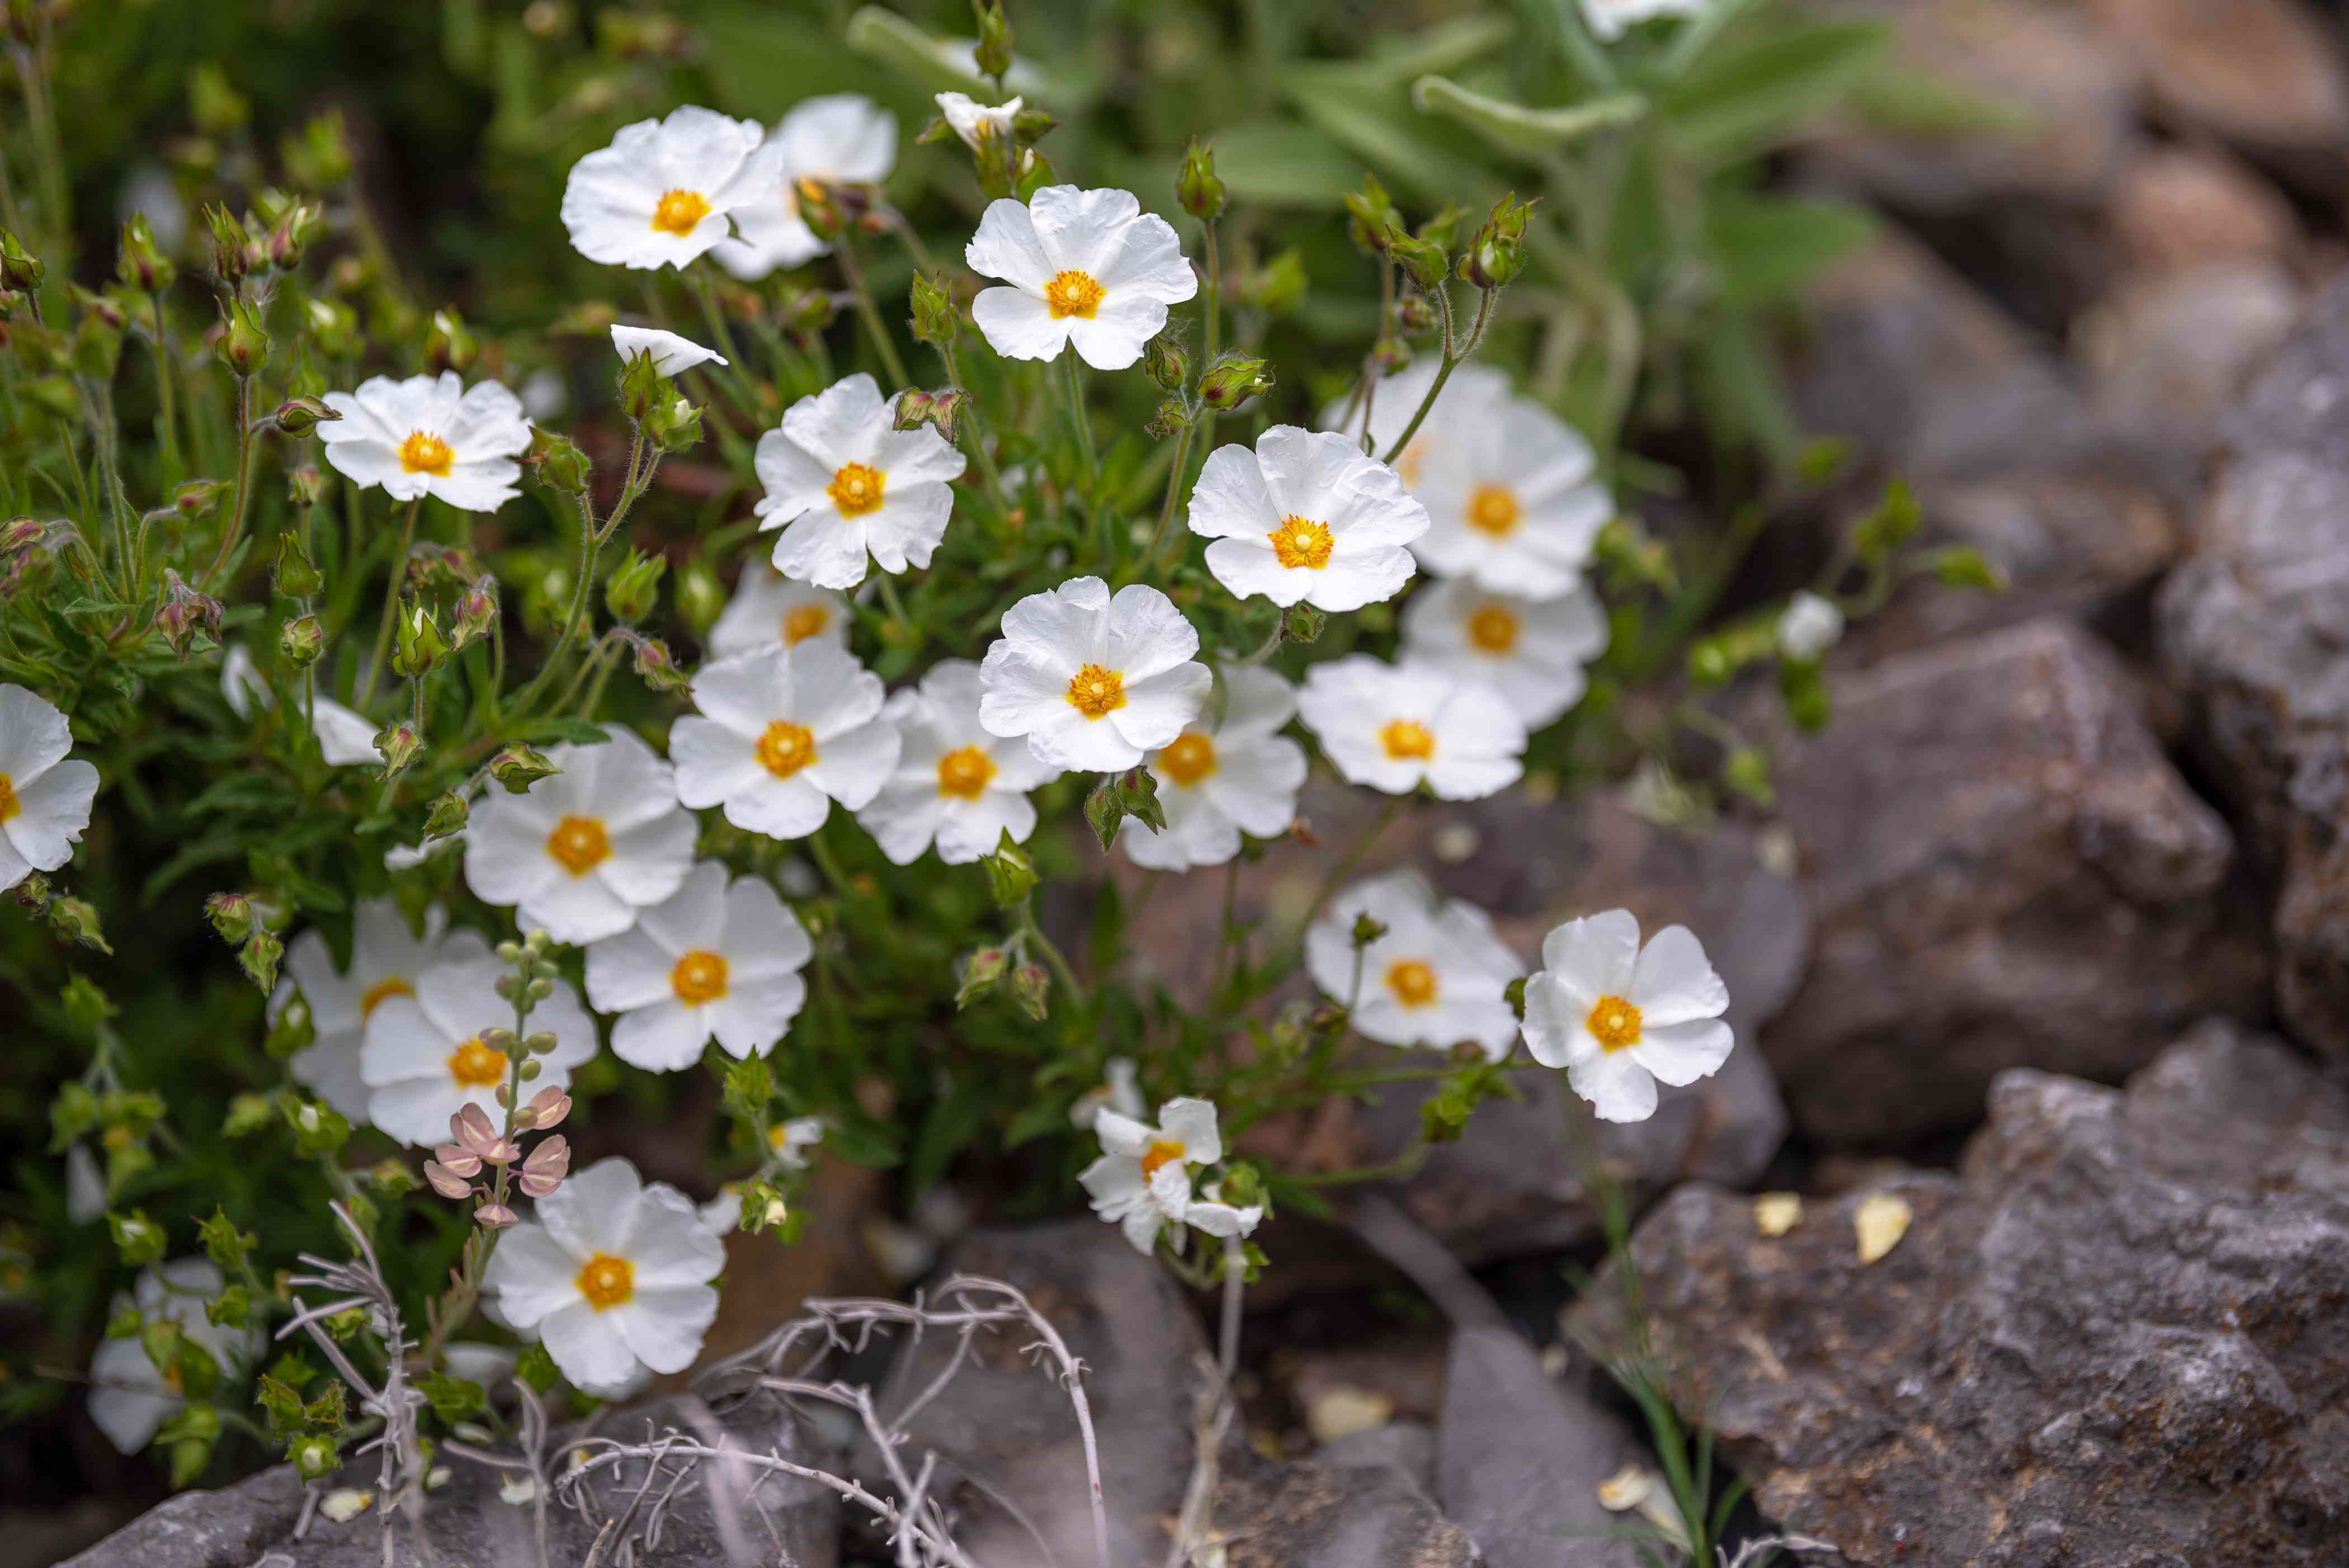 Rockrose shrub with small white flowers with yellow centers near small rocks